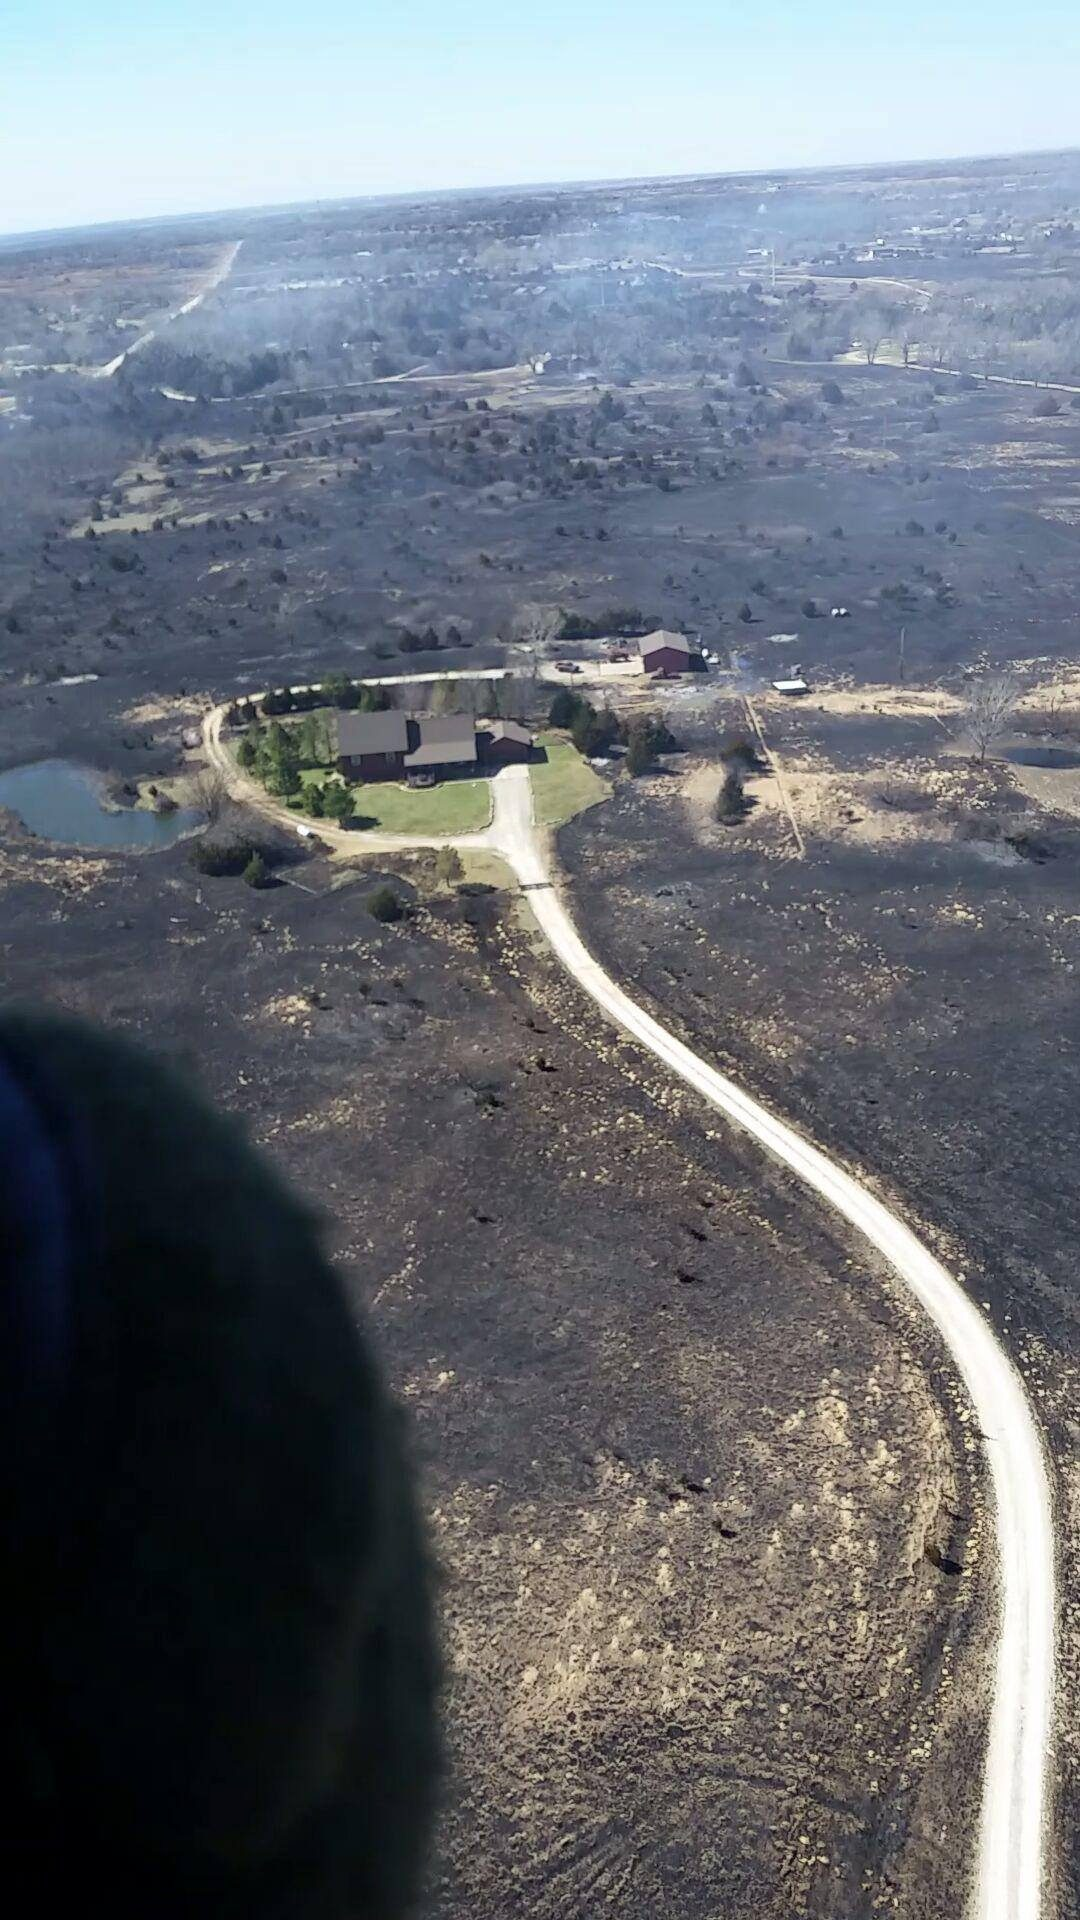 FACT CHECK: Did Sprinklers Save a House From a Massive Wildfire?